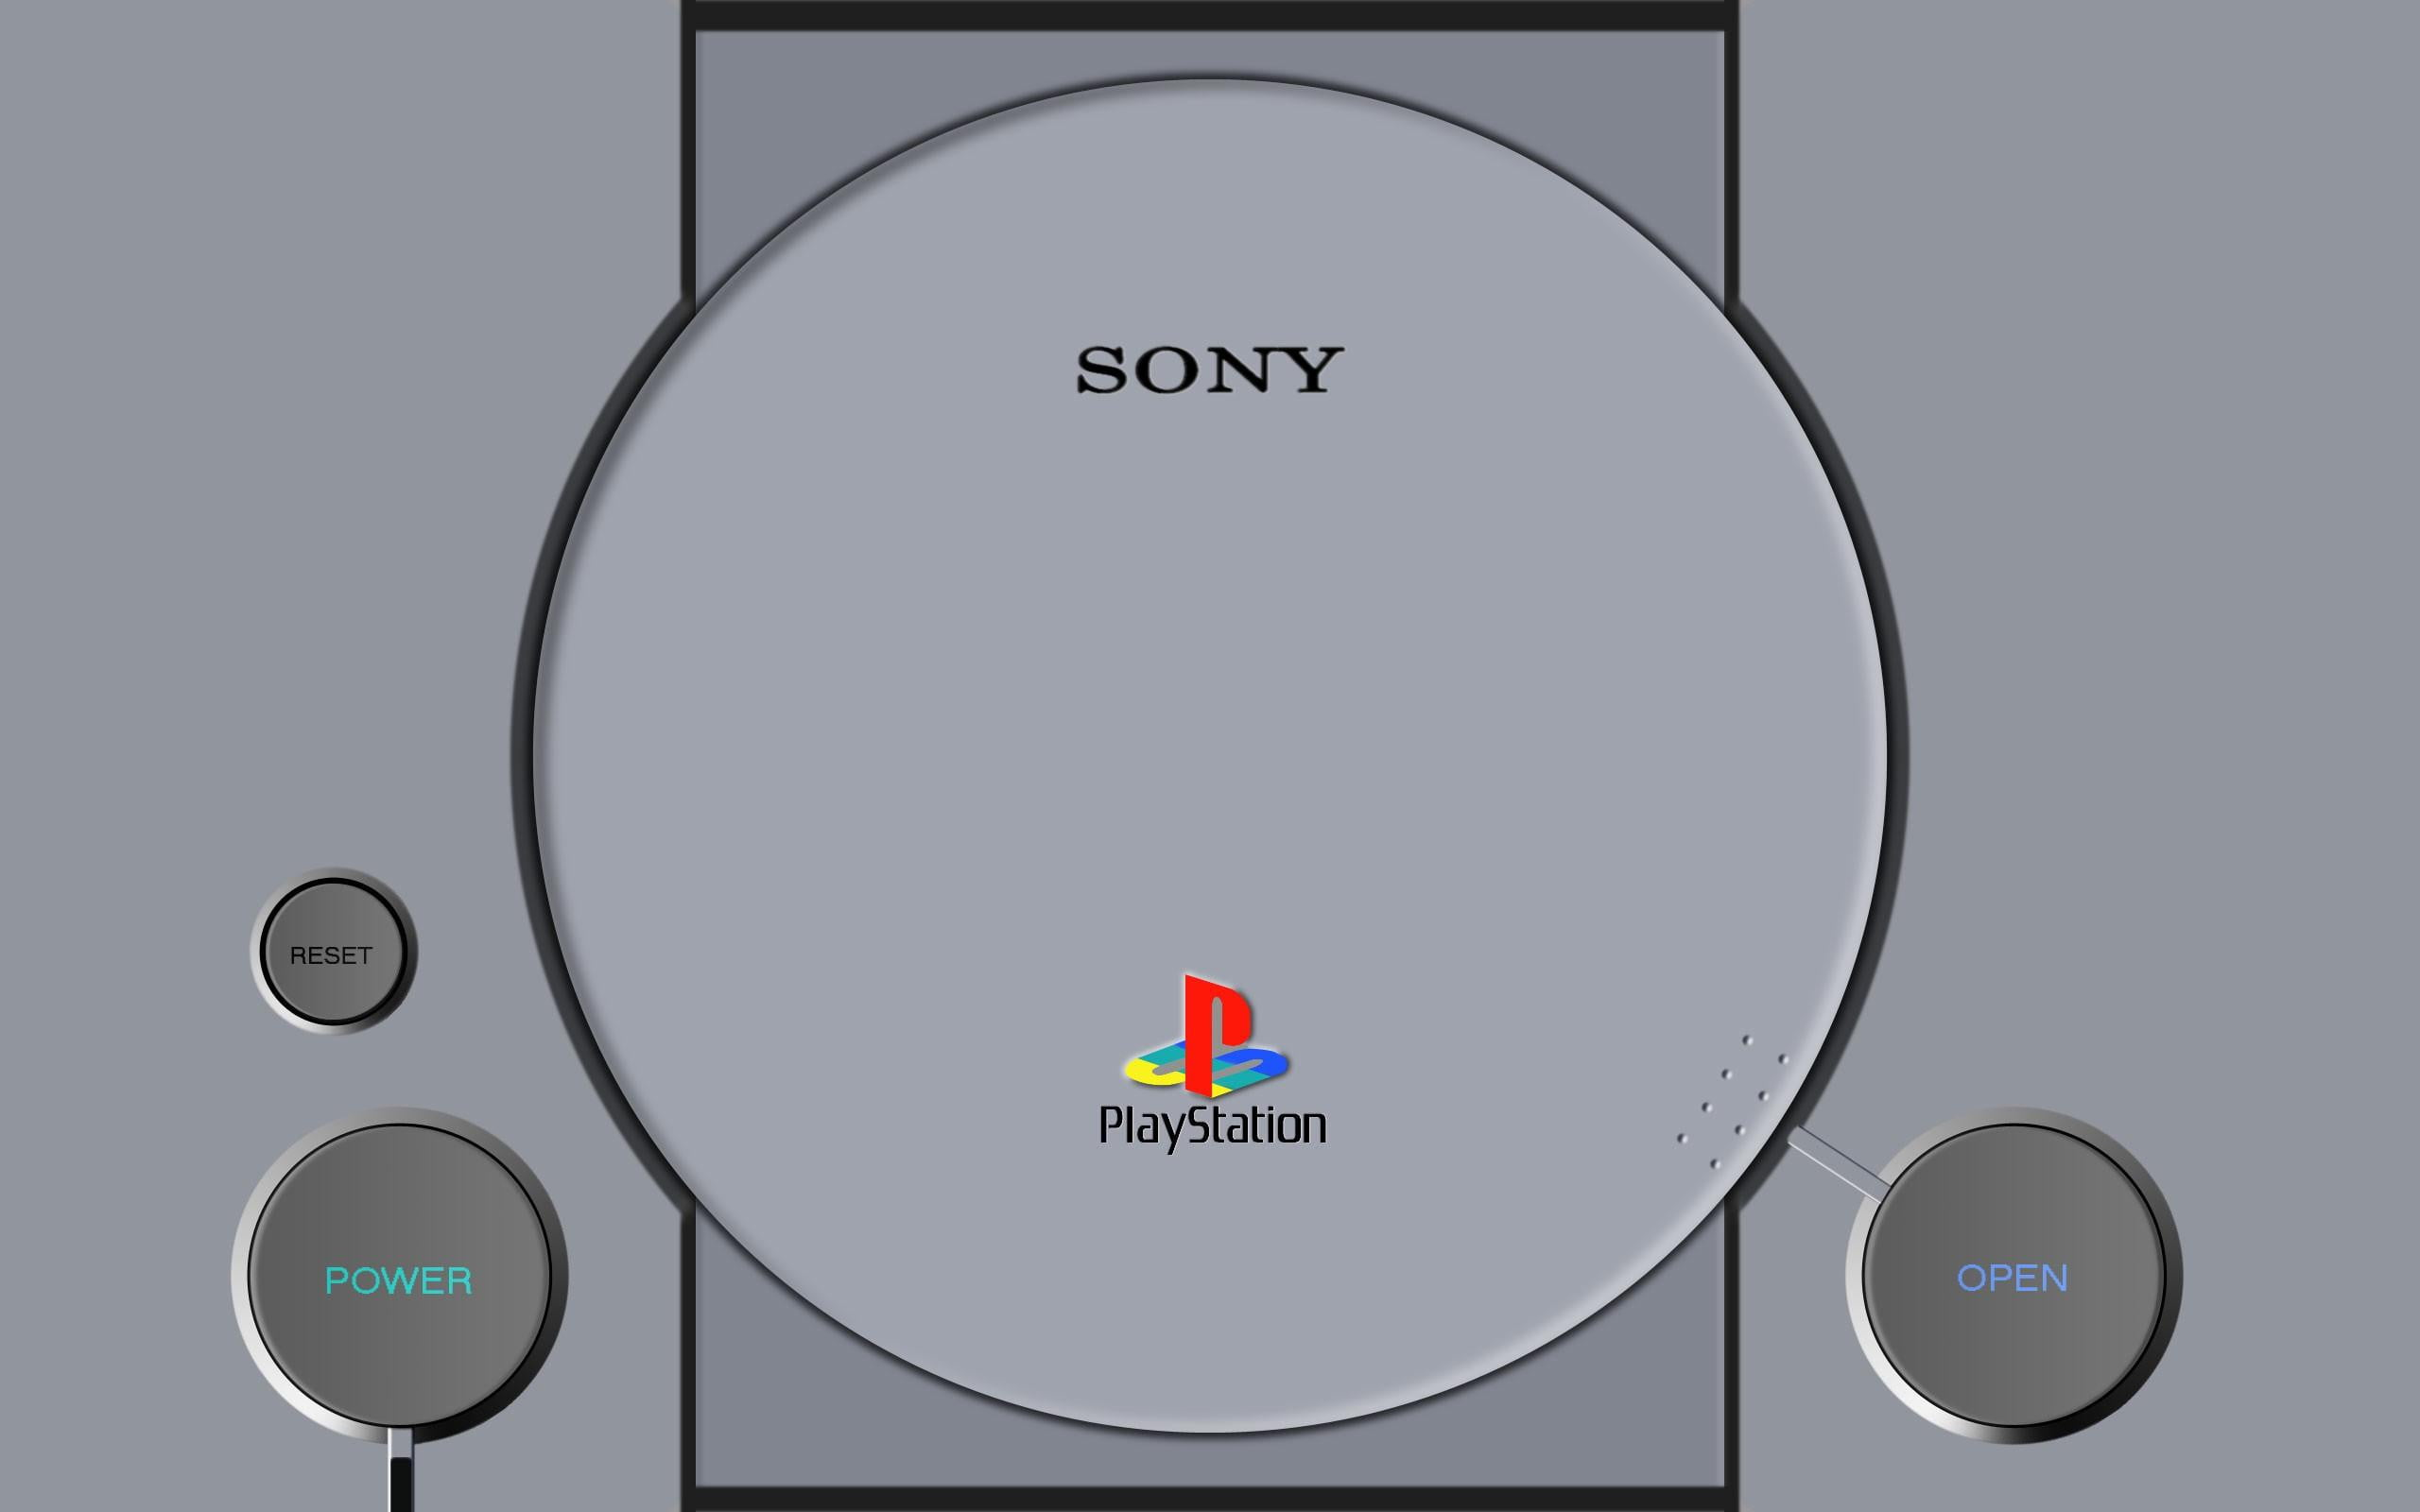 Sony says the era of the closed PlayStation platform is over